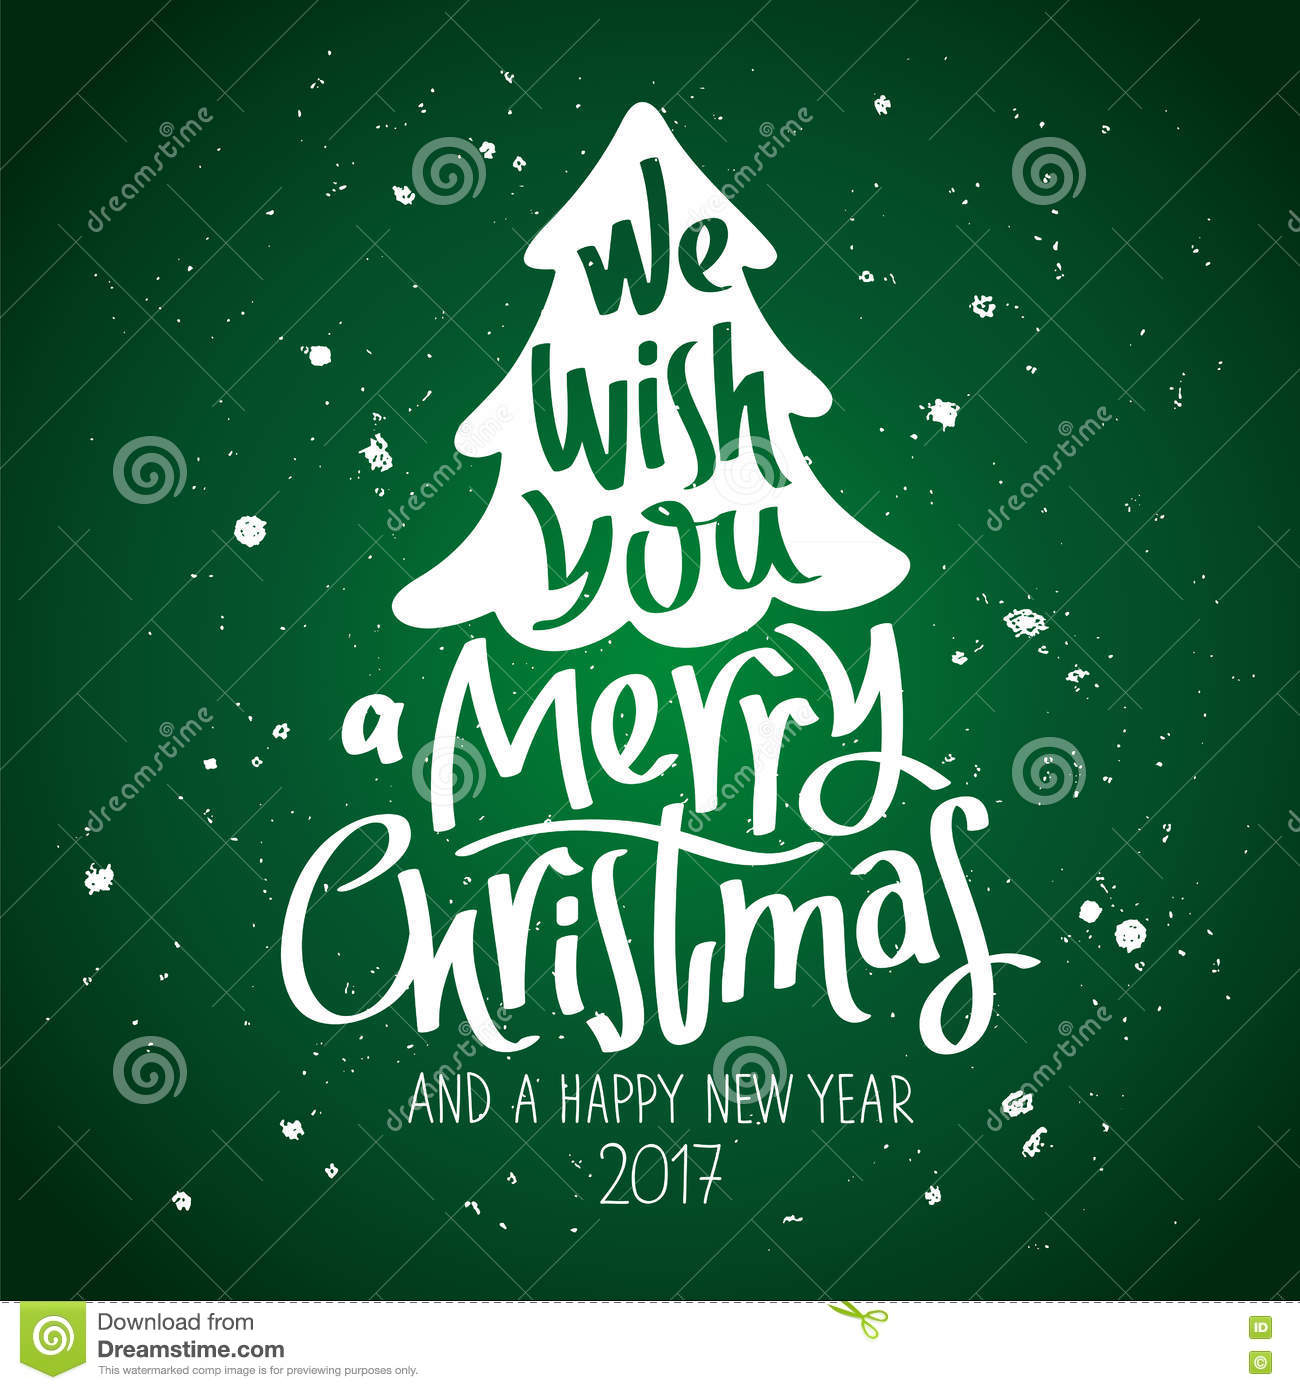 We Wish You A Merry Christmas Stock Vector   Illustration of